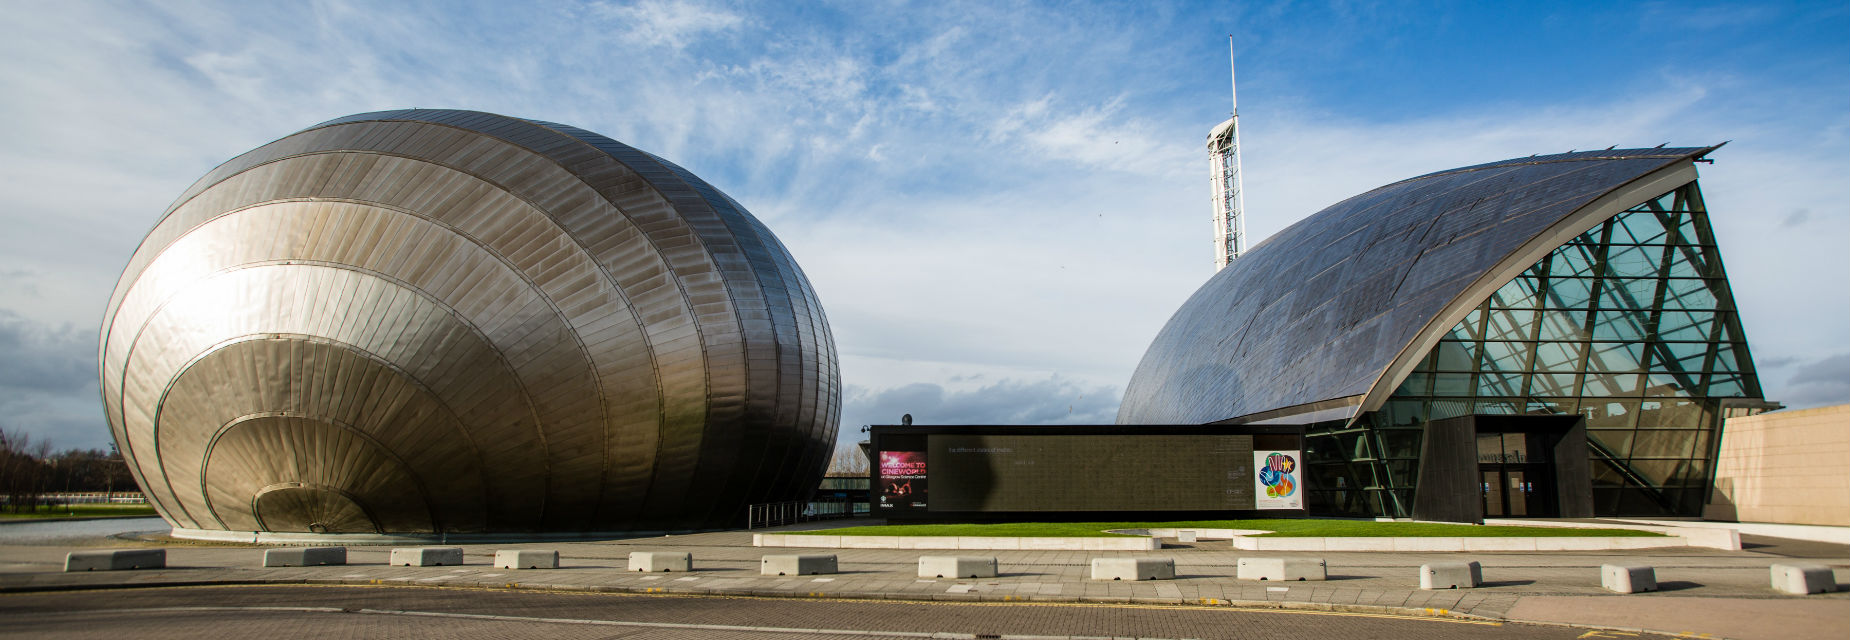 A view from outside of Glasgow Science Centre